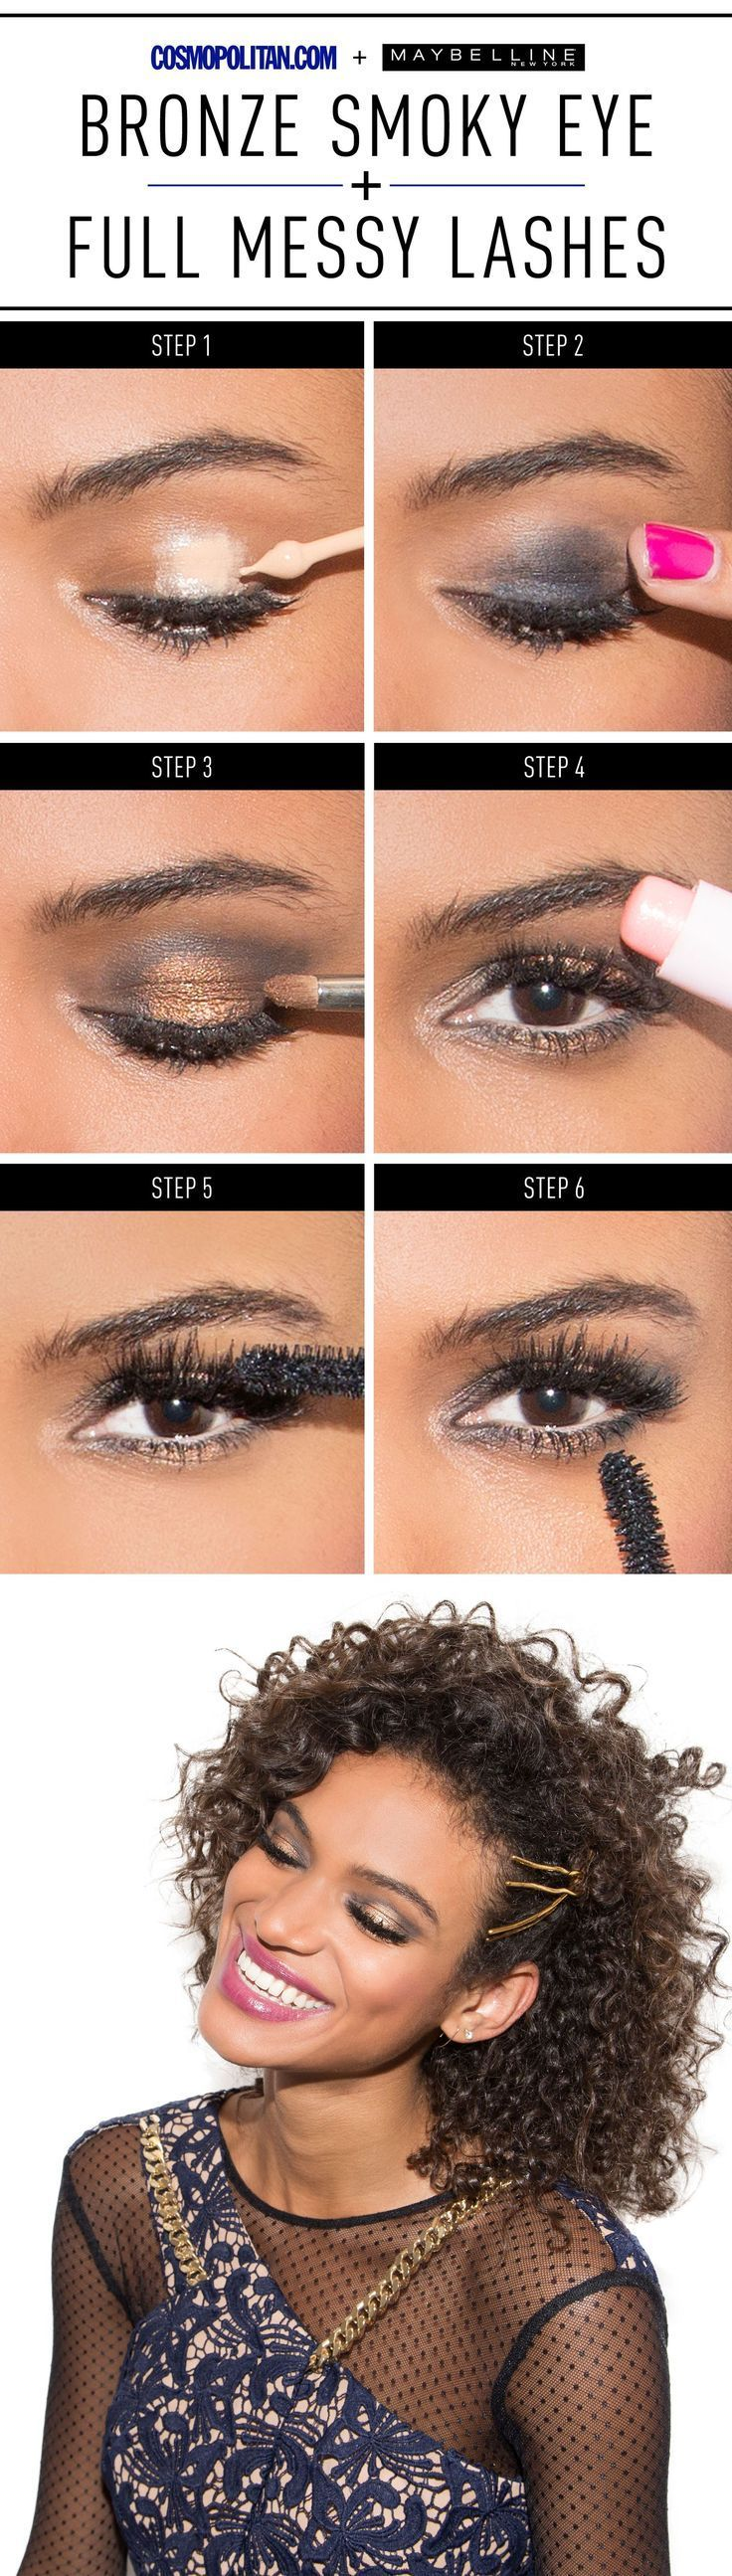 Photo of How to Do an Unexpected Bronze Smoky Eye With Sexy, Messy Lashes,  #Bronze #Eye #Forbronzeeye…